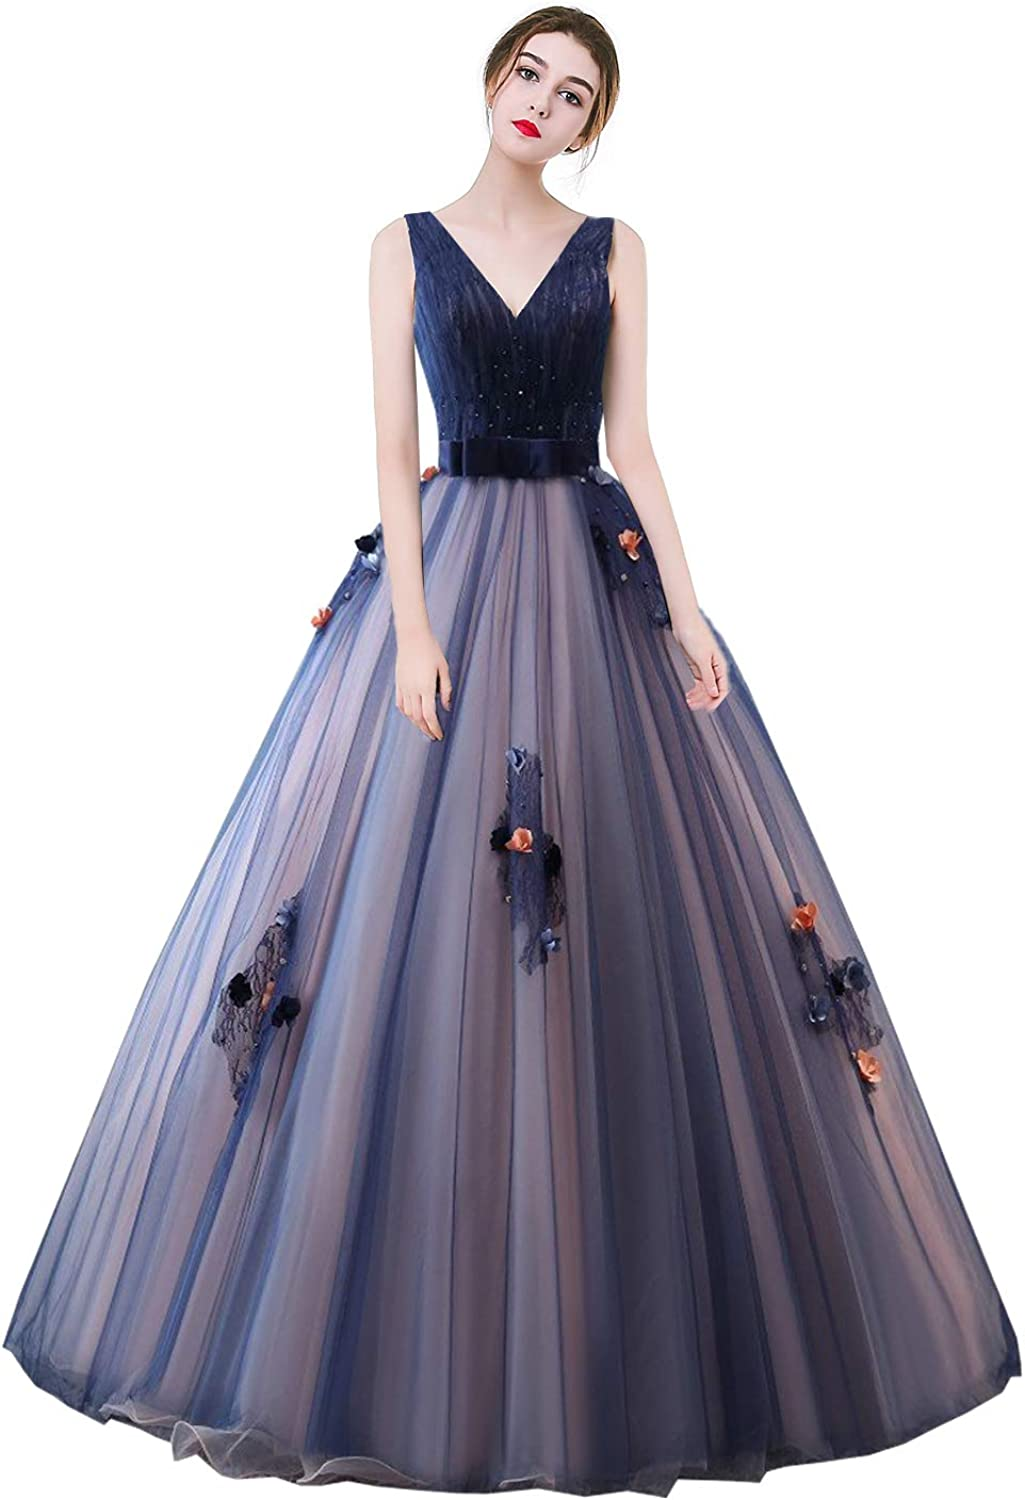 Libaosha Gorgeous Quinceanera Dress Flower Appliqued Ball Gown for Sweet 16 Party & Ceremony